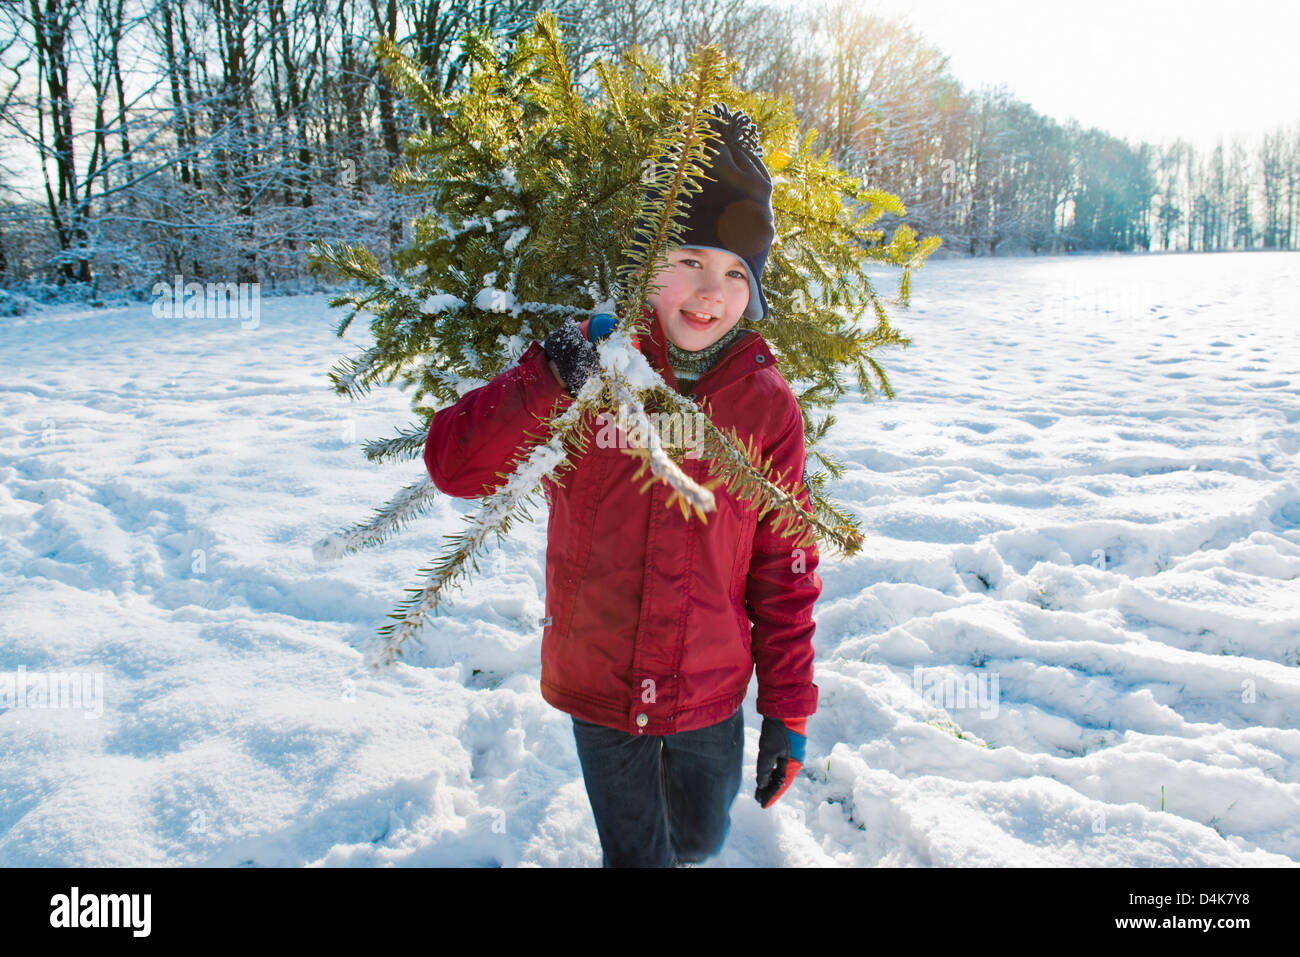 Boy carrying Christmas tree in snow - Stock Image